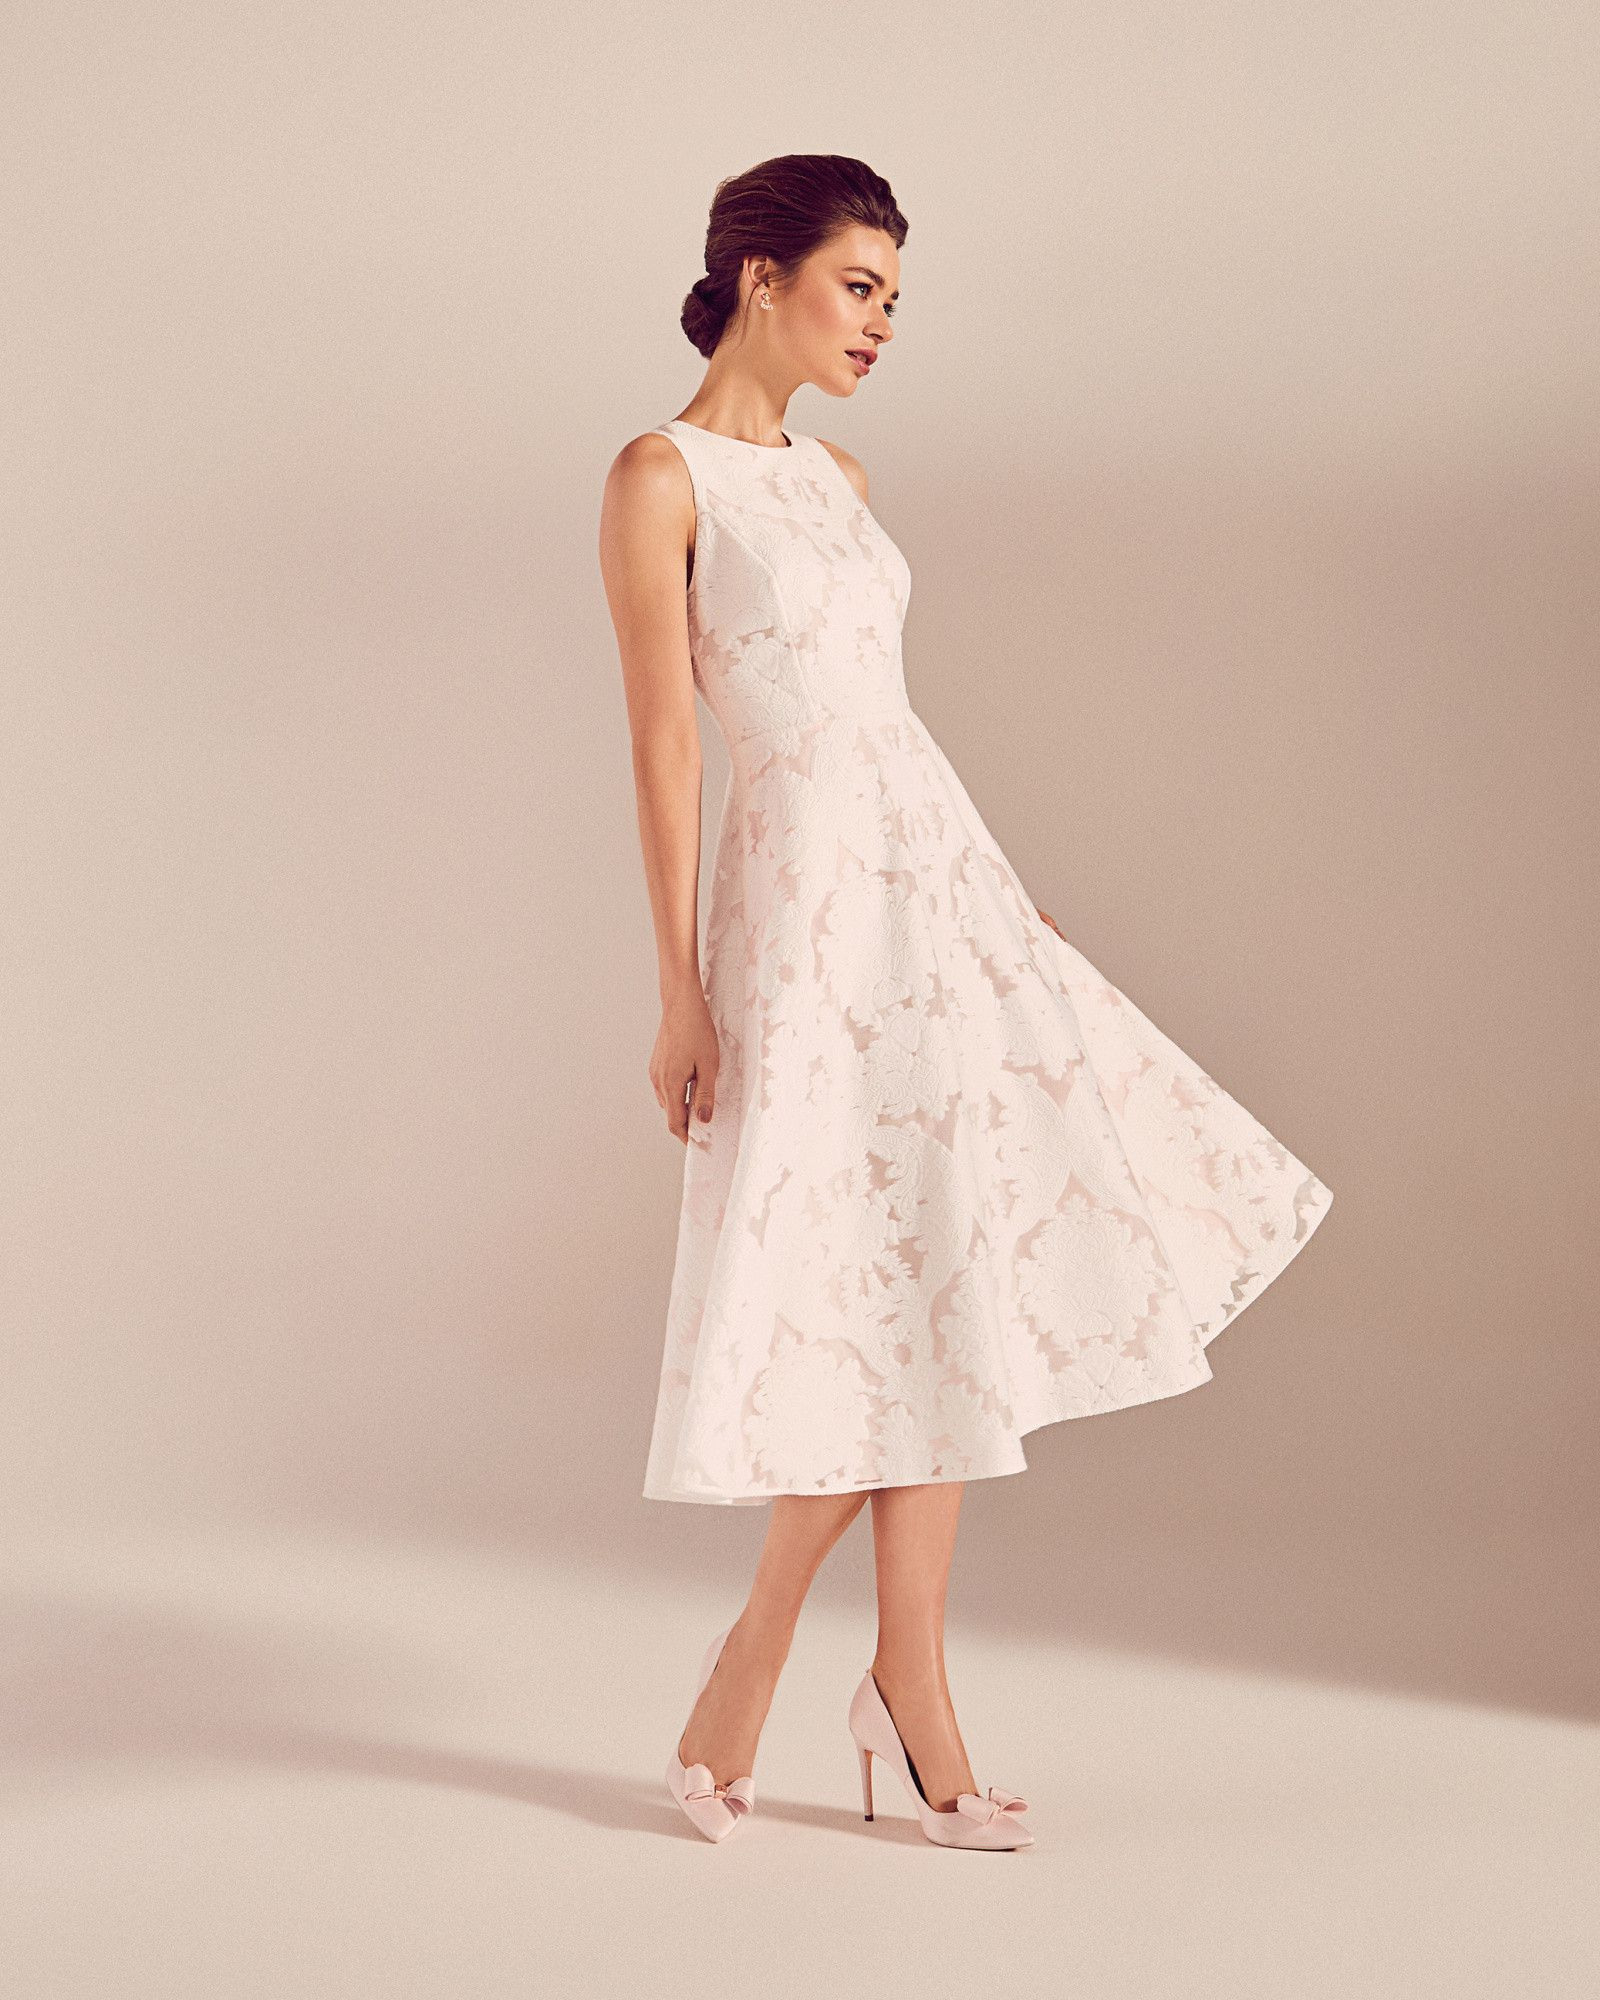 Cool Ted Baker Abendkleid SpezialgebietFormal Luxurius Ted Baker Abendkleid Boutique